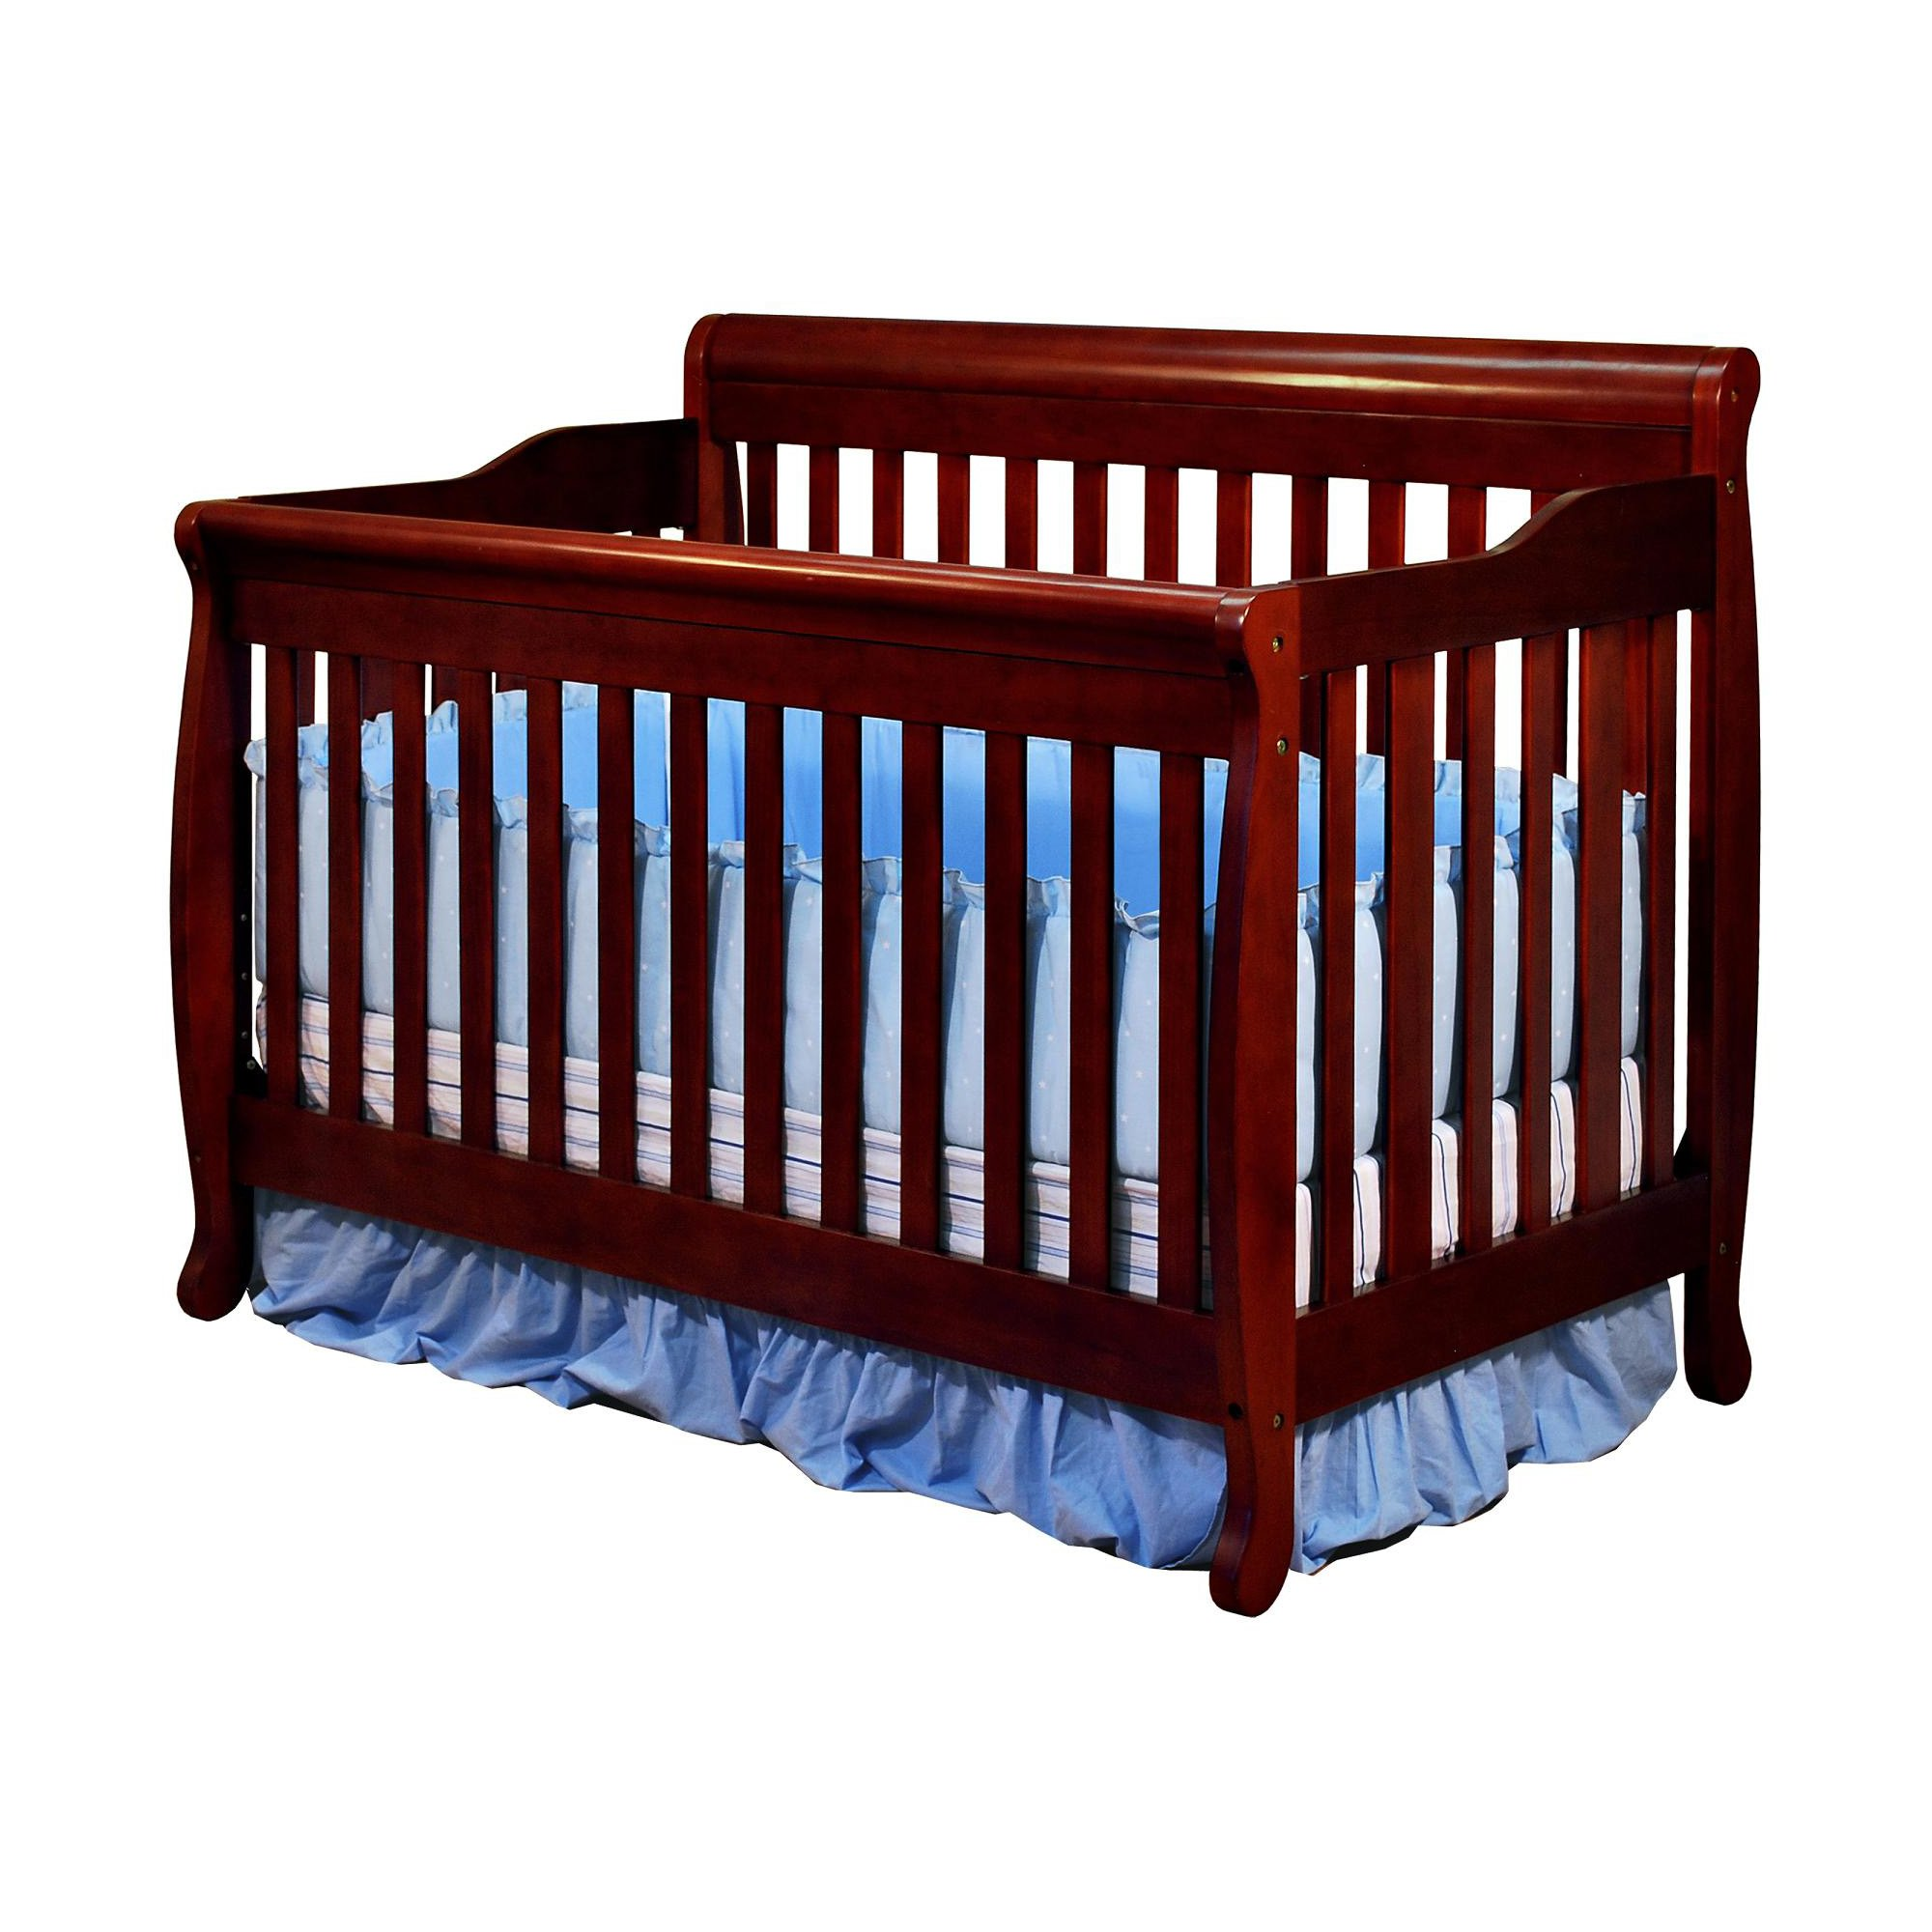 Athena Alice 3 in 1 Convertible Crib - Cherry